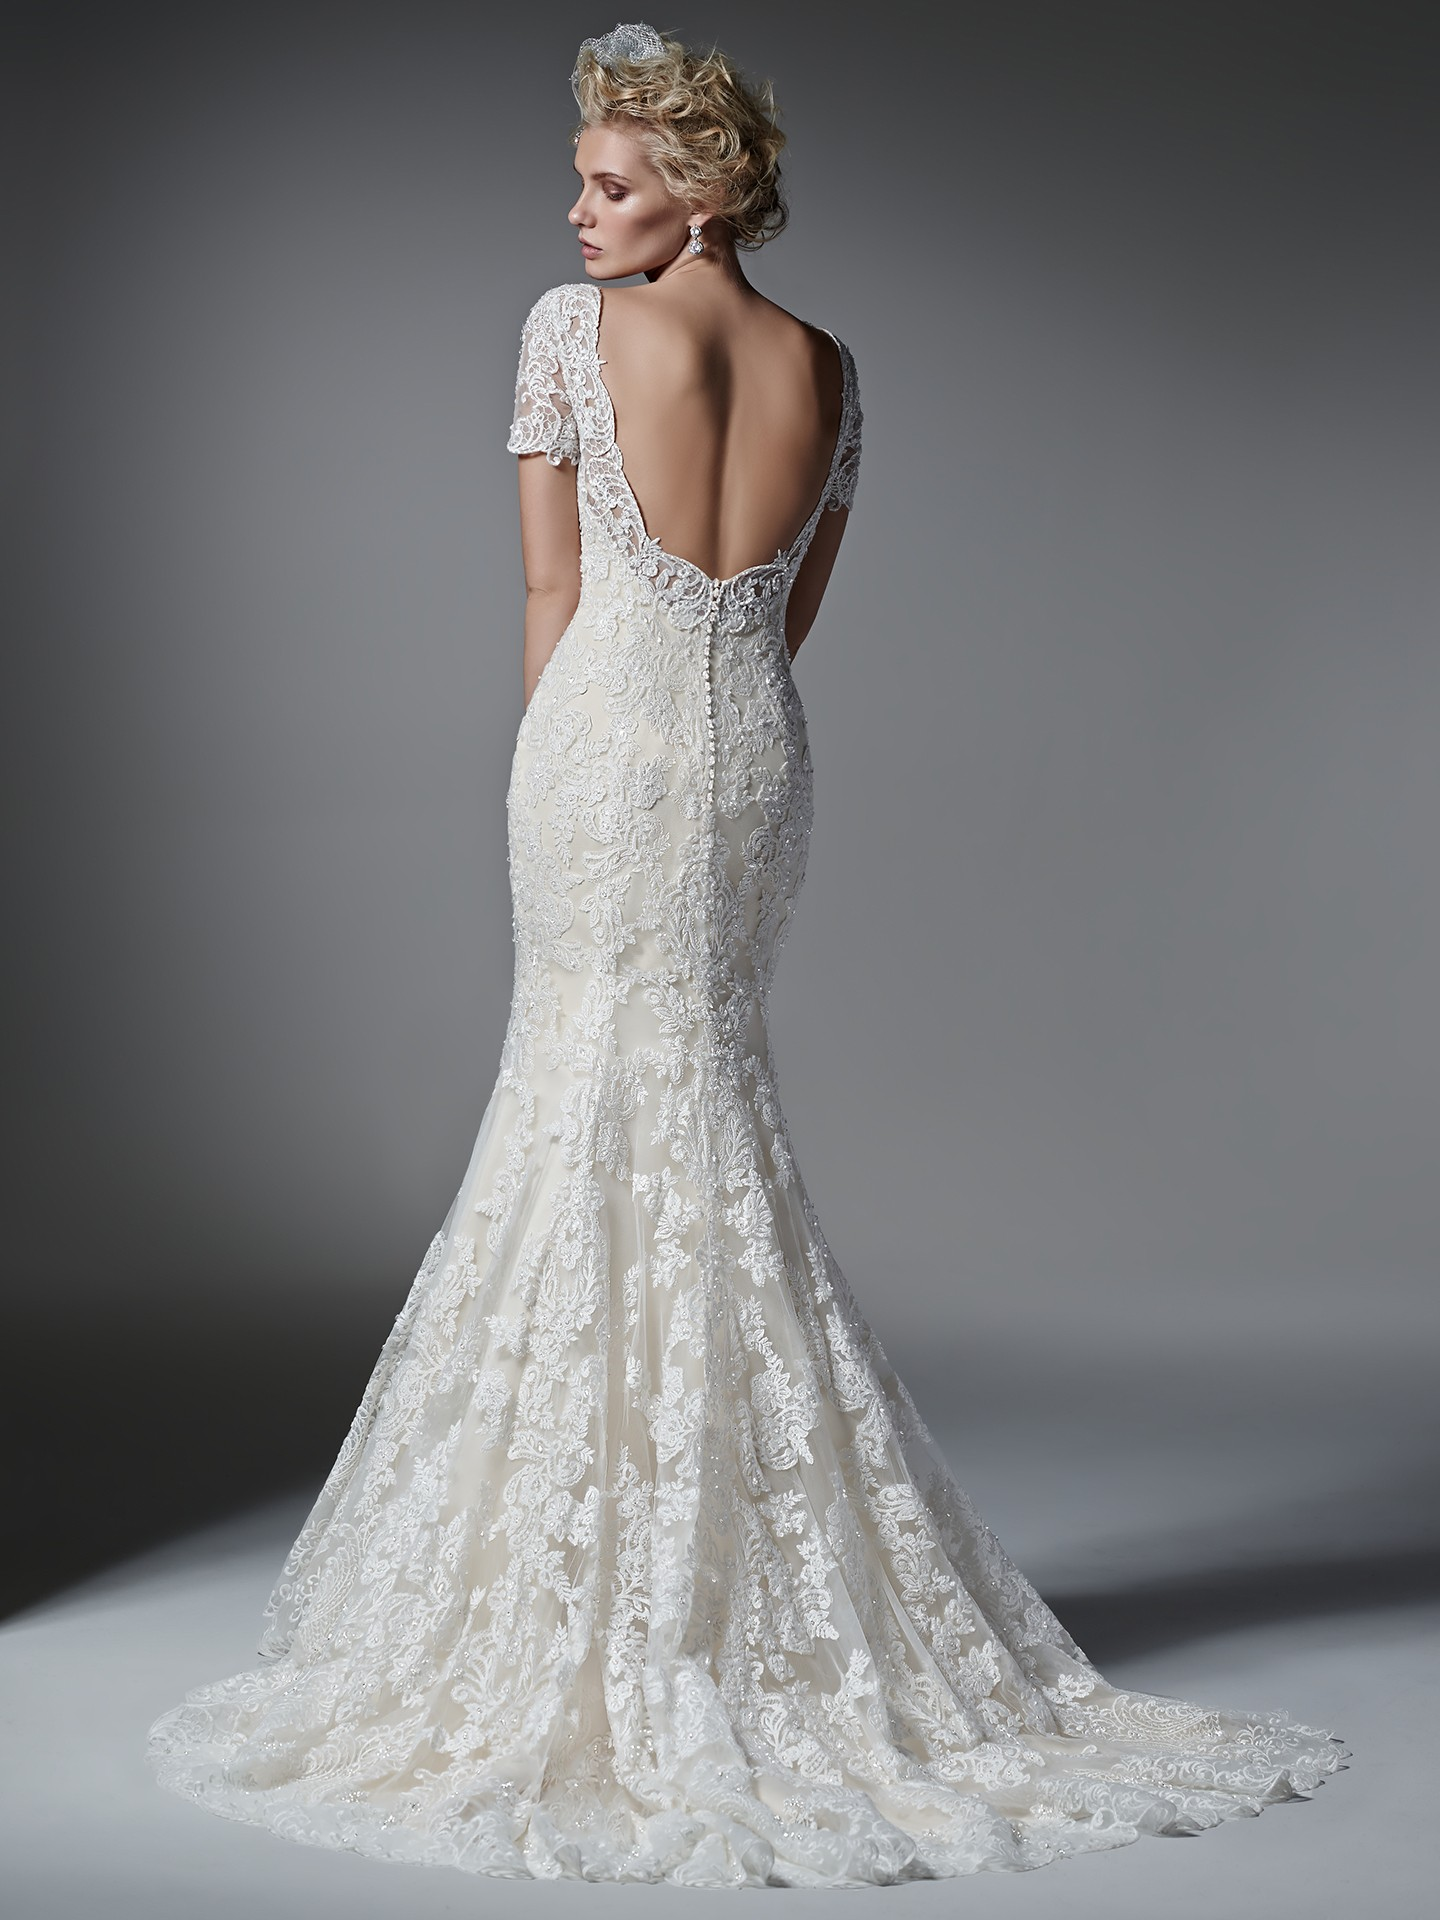 sleeved wedding dresses Tierney by Sottero and Midgley